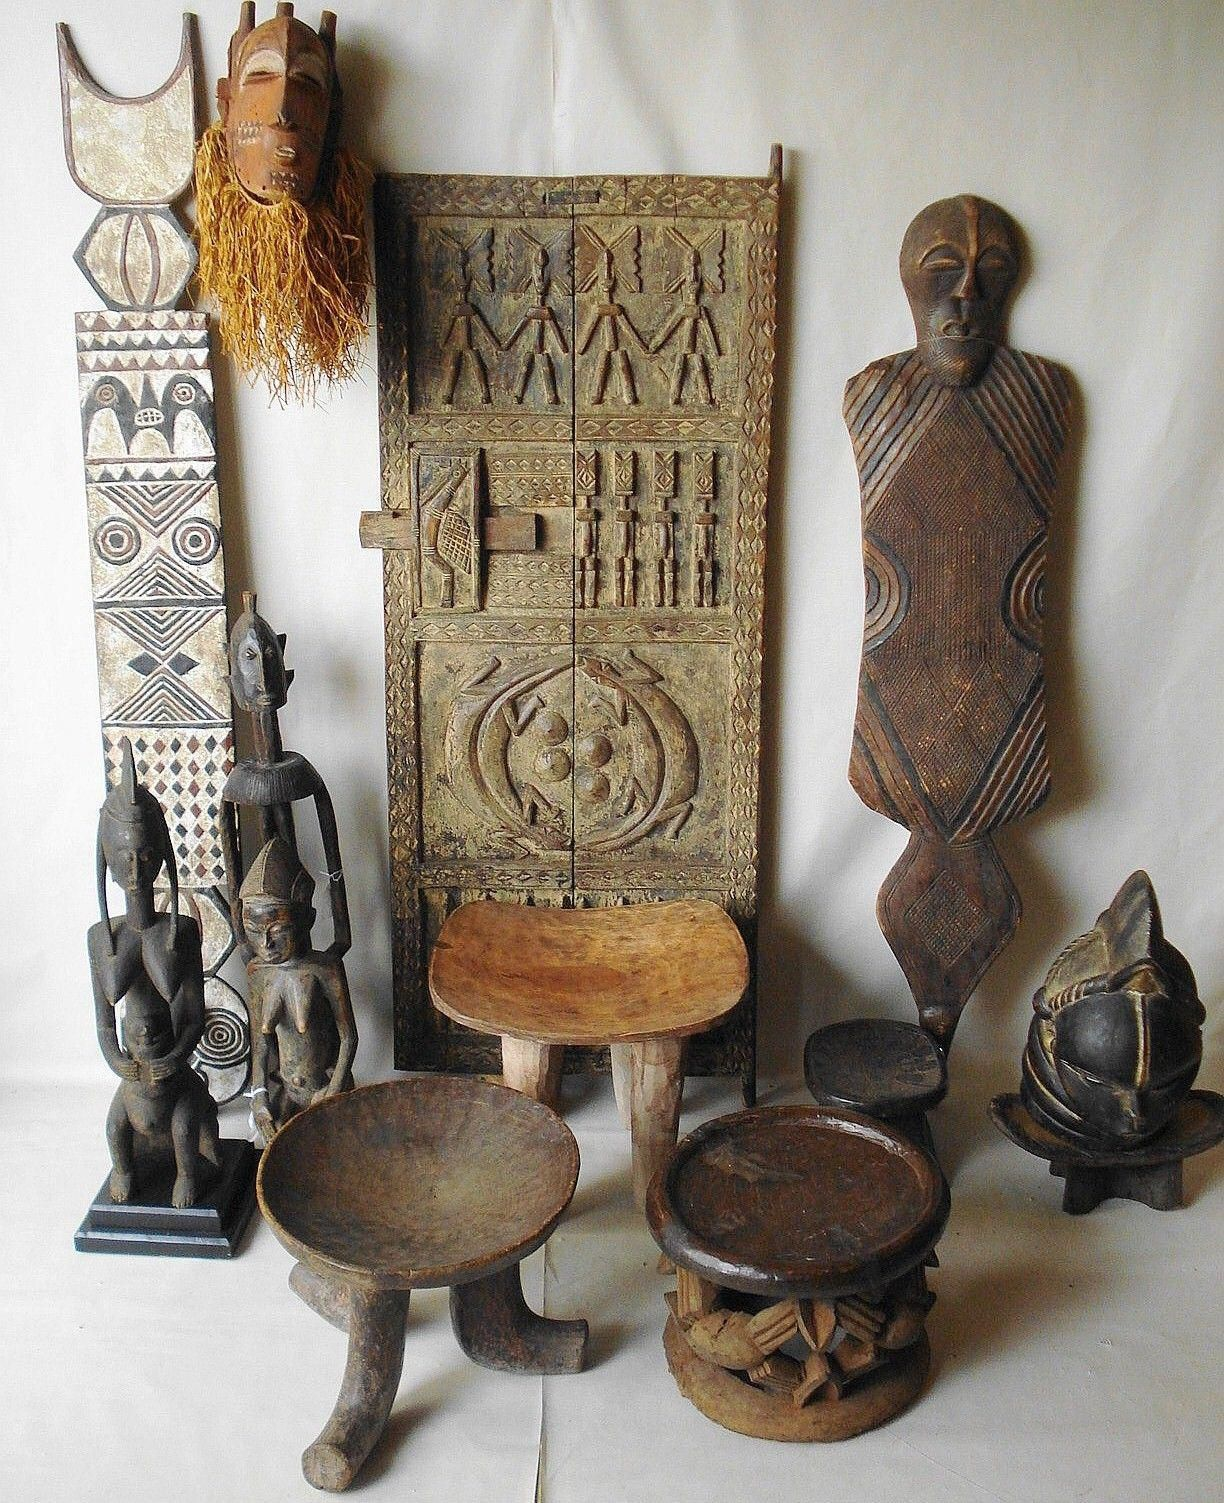 25 Best Ideas About African Furniture On Pinterest: African Art At Ethnika #africanfurniture